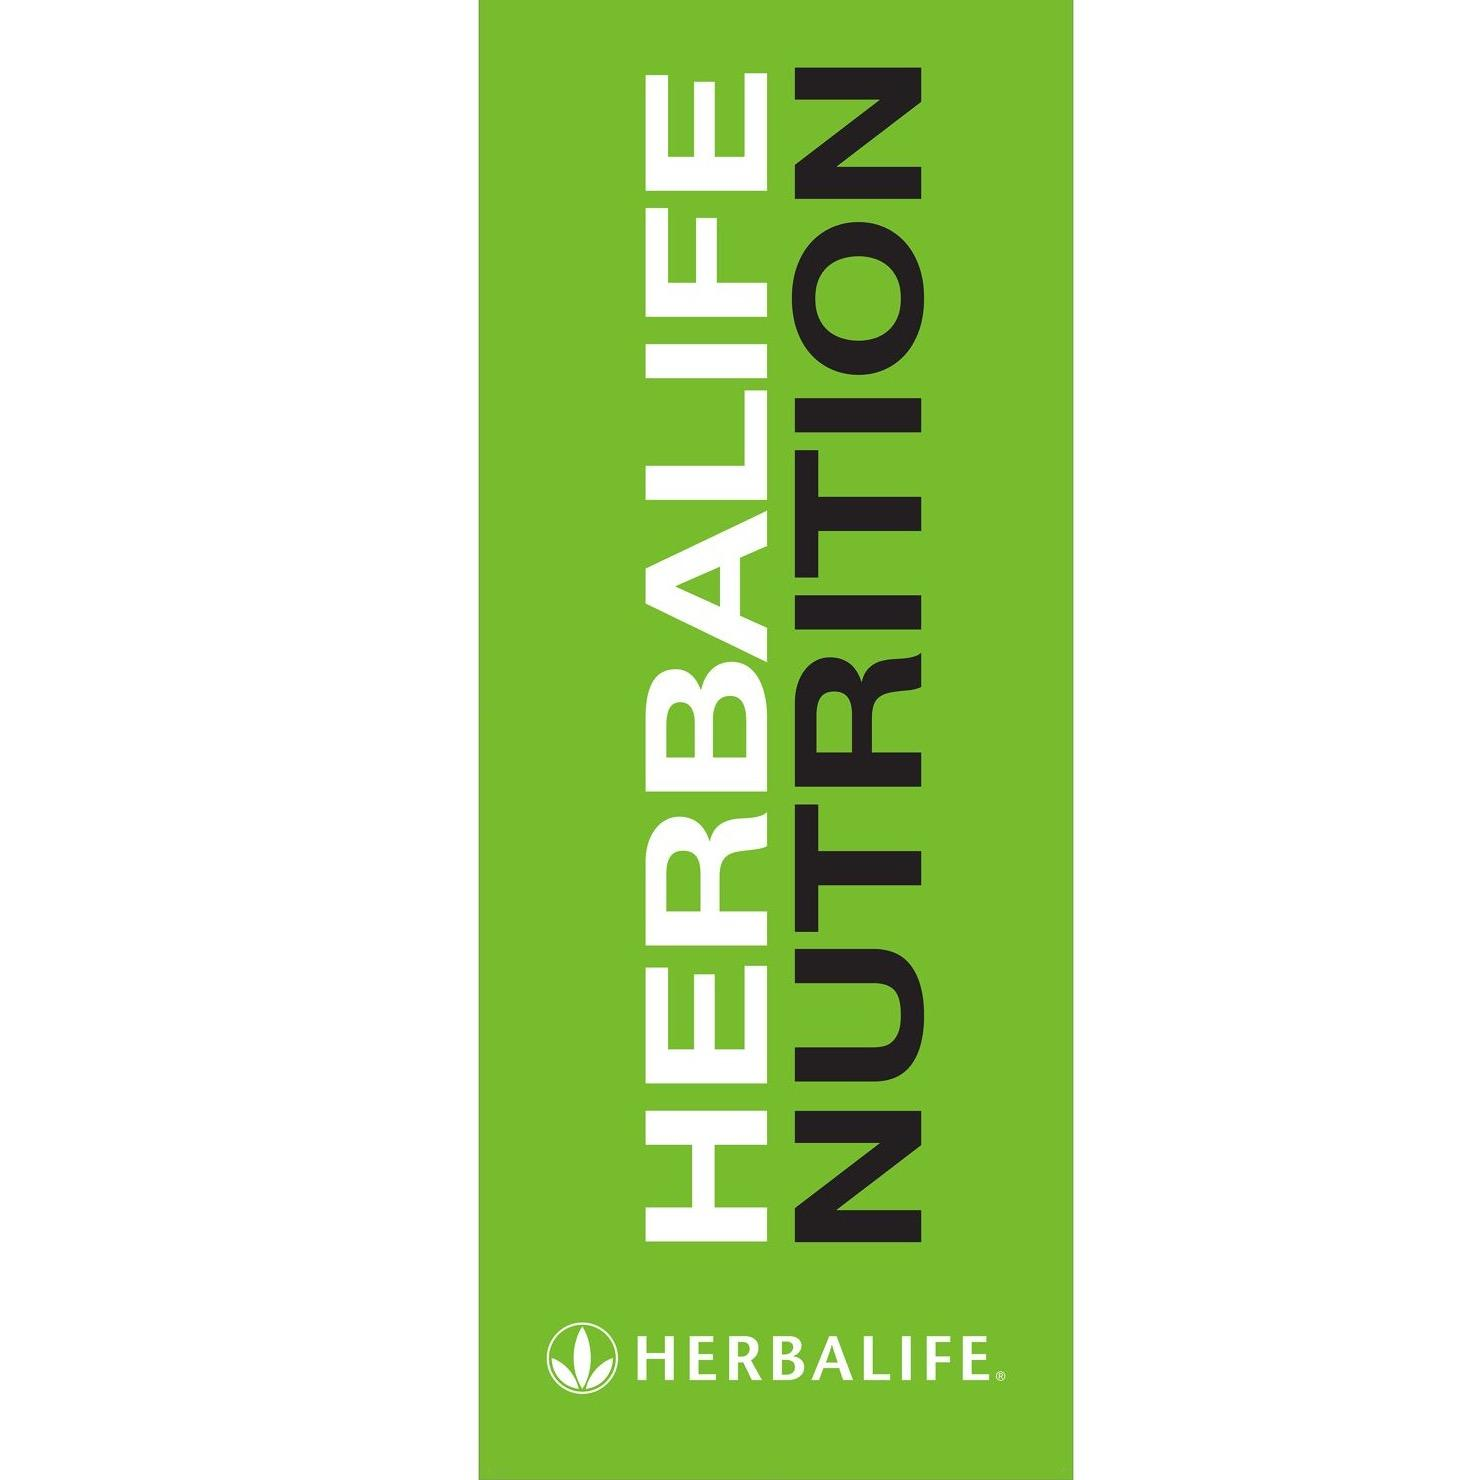 Herbalife - Fremont, CA - Health Food & Supplements